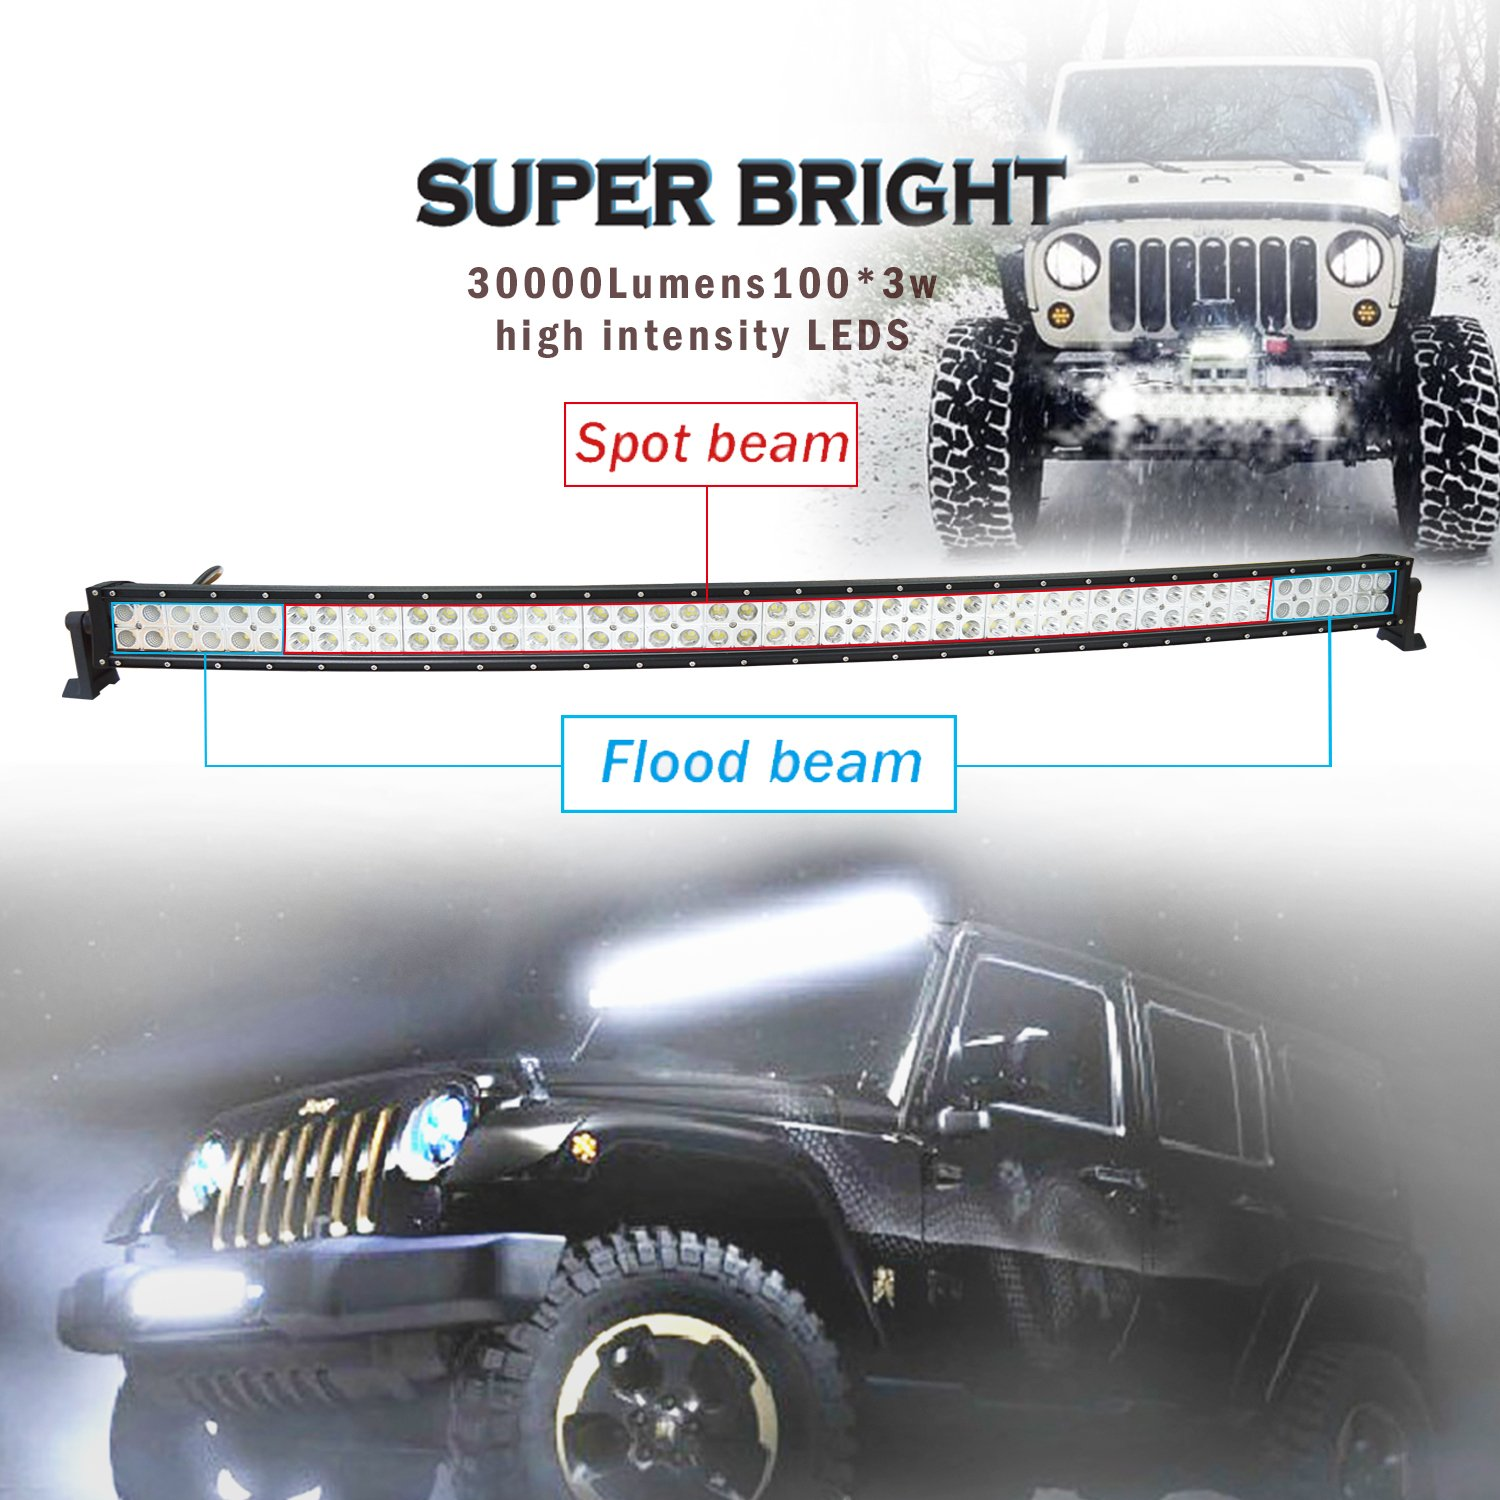 Easynew Ip68 300w 10 30v Waterproof Curved Led Light Bar 1995 Dodge Ram 1500 4x4 52 I Need The Diagramecmharness Inch With 2 Piece 18w Lights And Wiring Harness Mounts Automotive